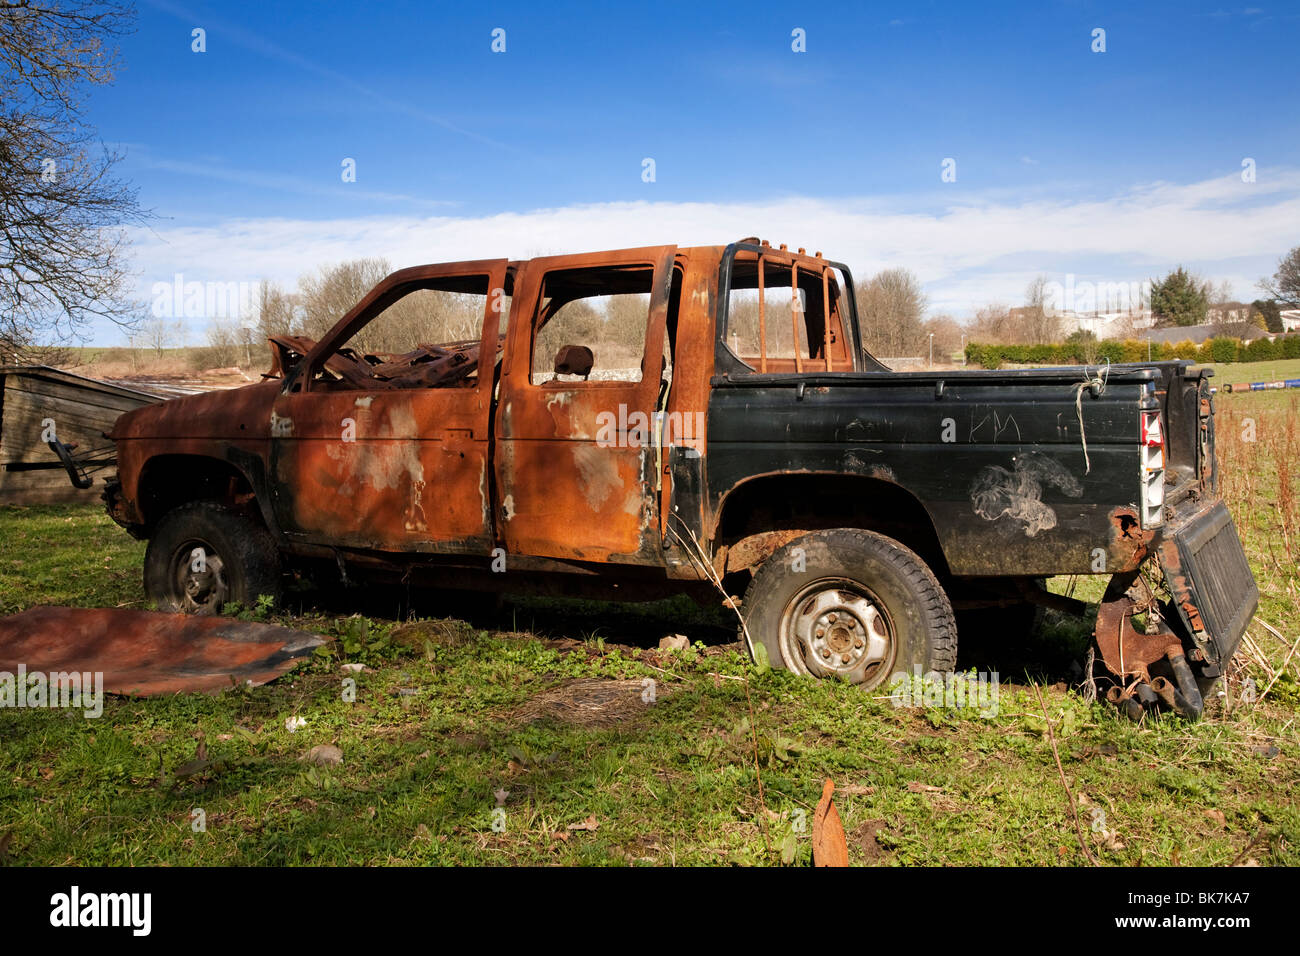 Abandoned Truck Stock Photos & Abandoned Truck Stock Images - Alamy